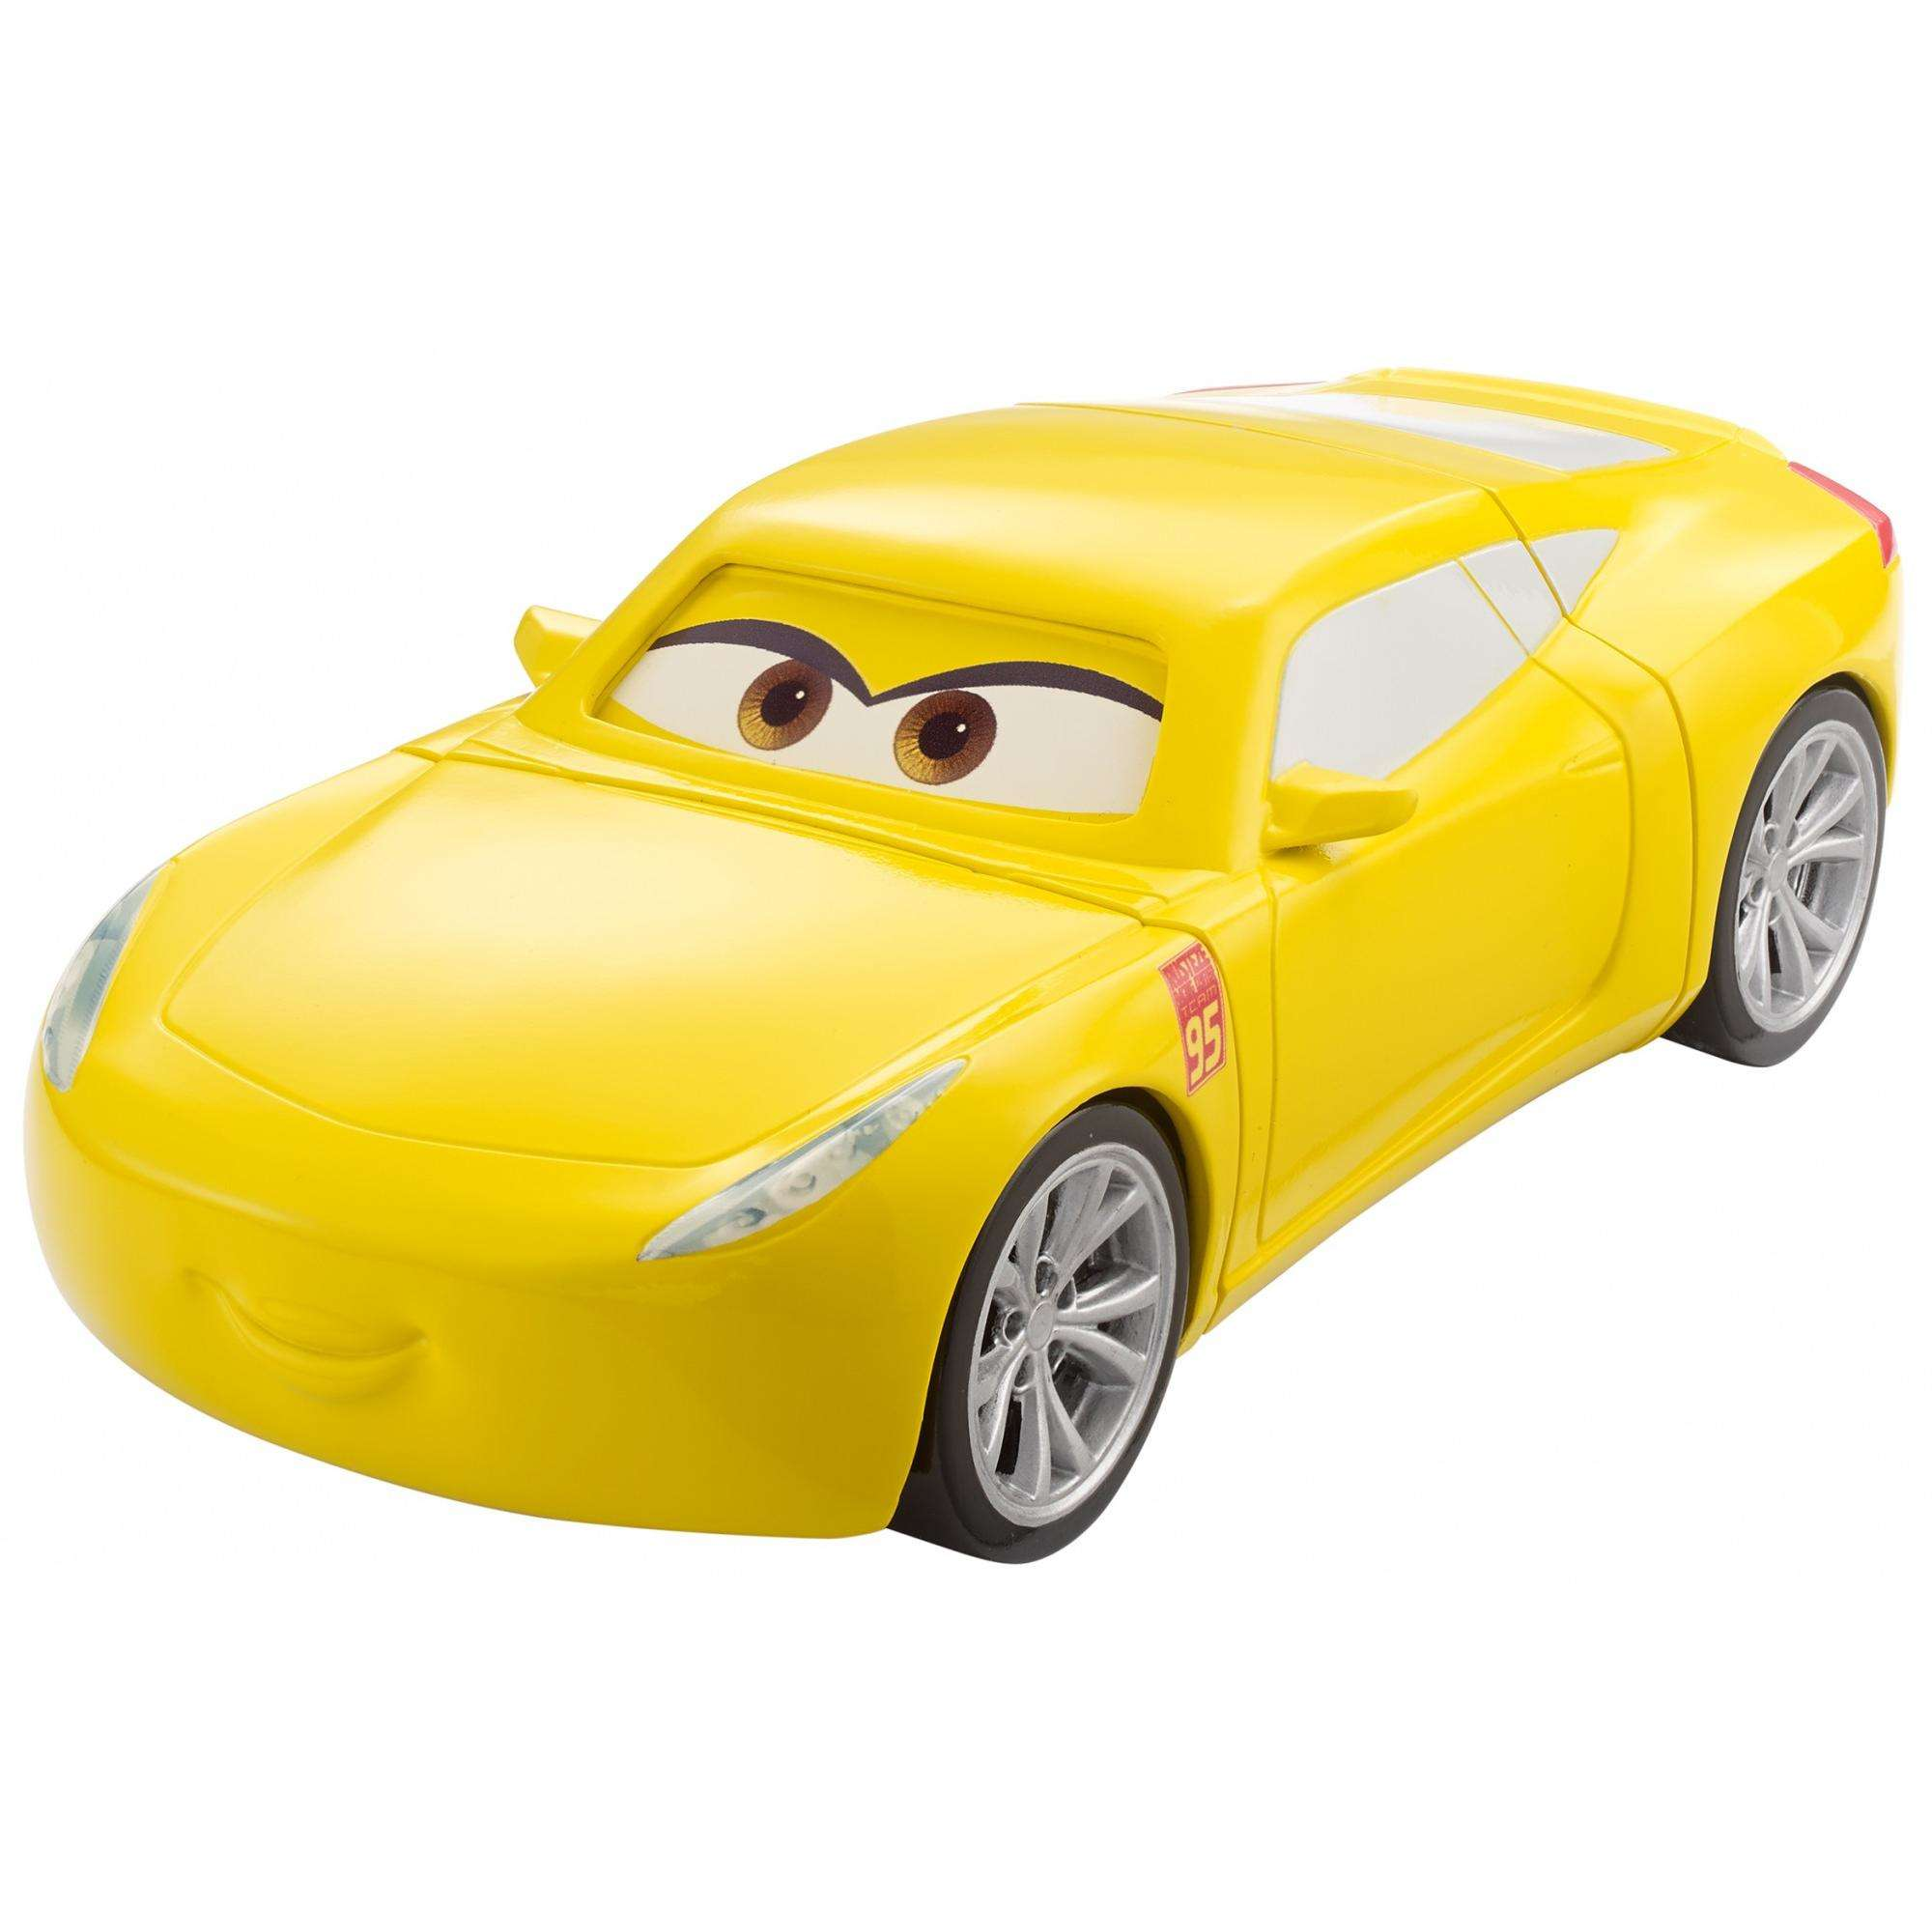 Disney Pixar Cars 3 Race & 'Reck Cruz Ramirez Vehicle